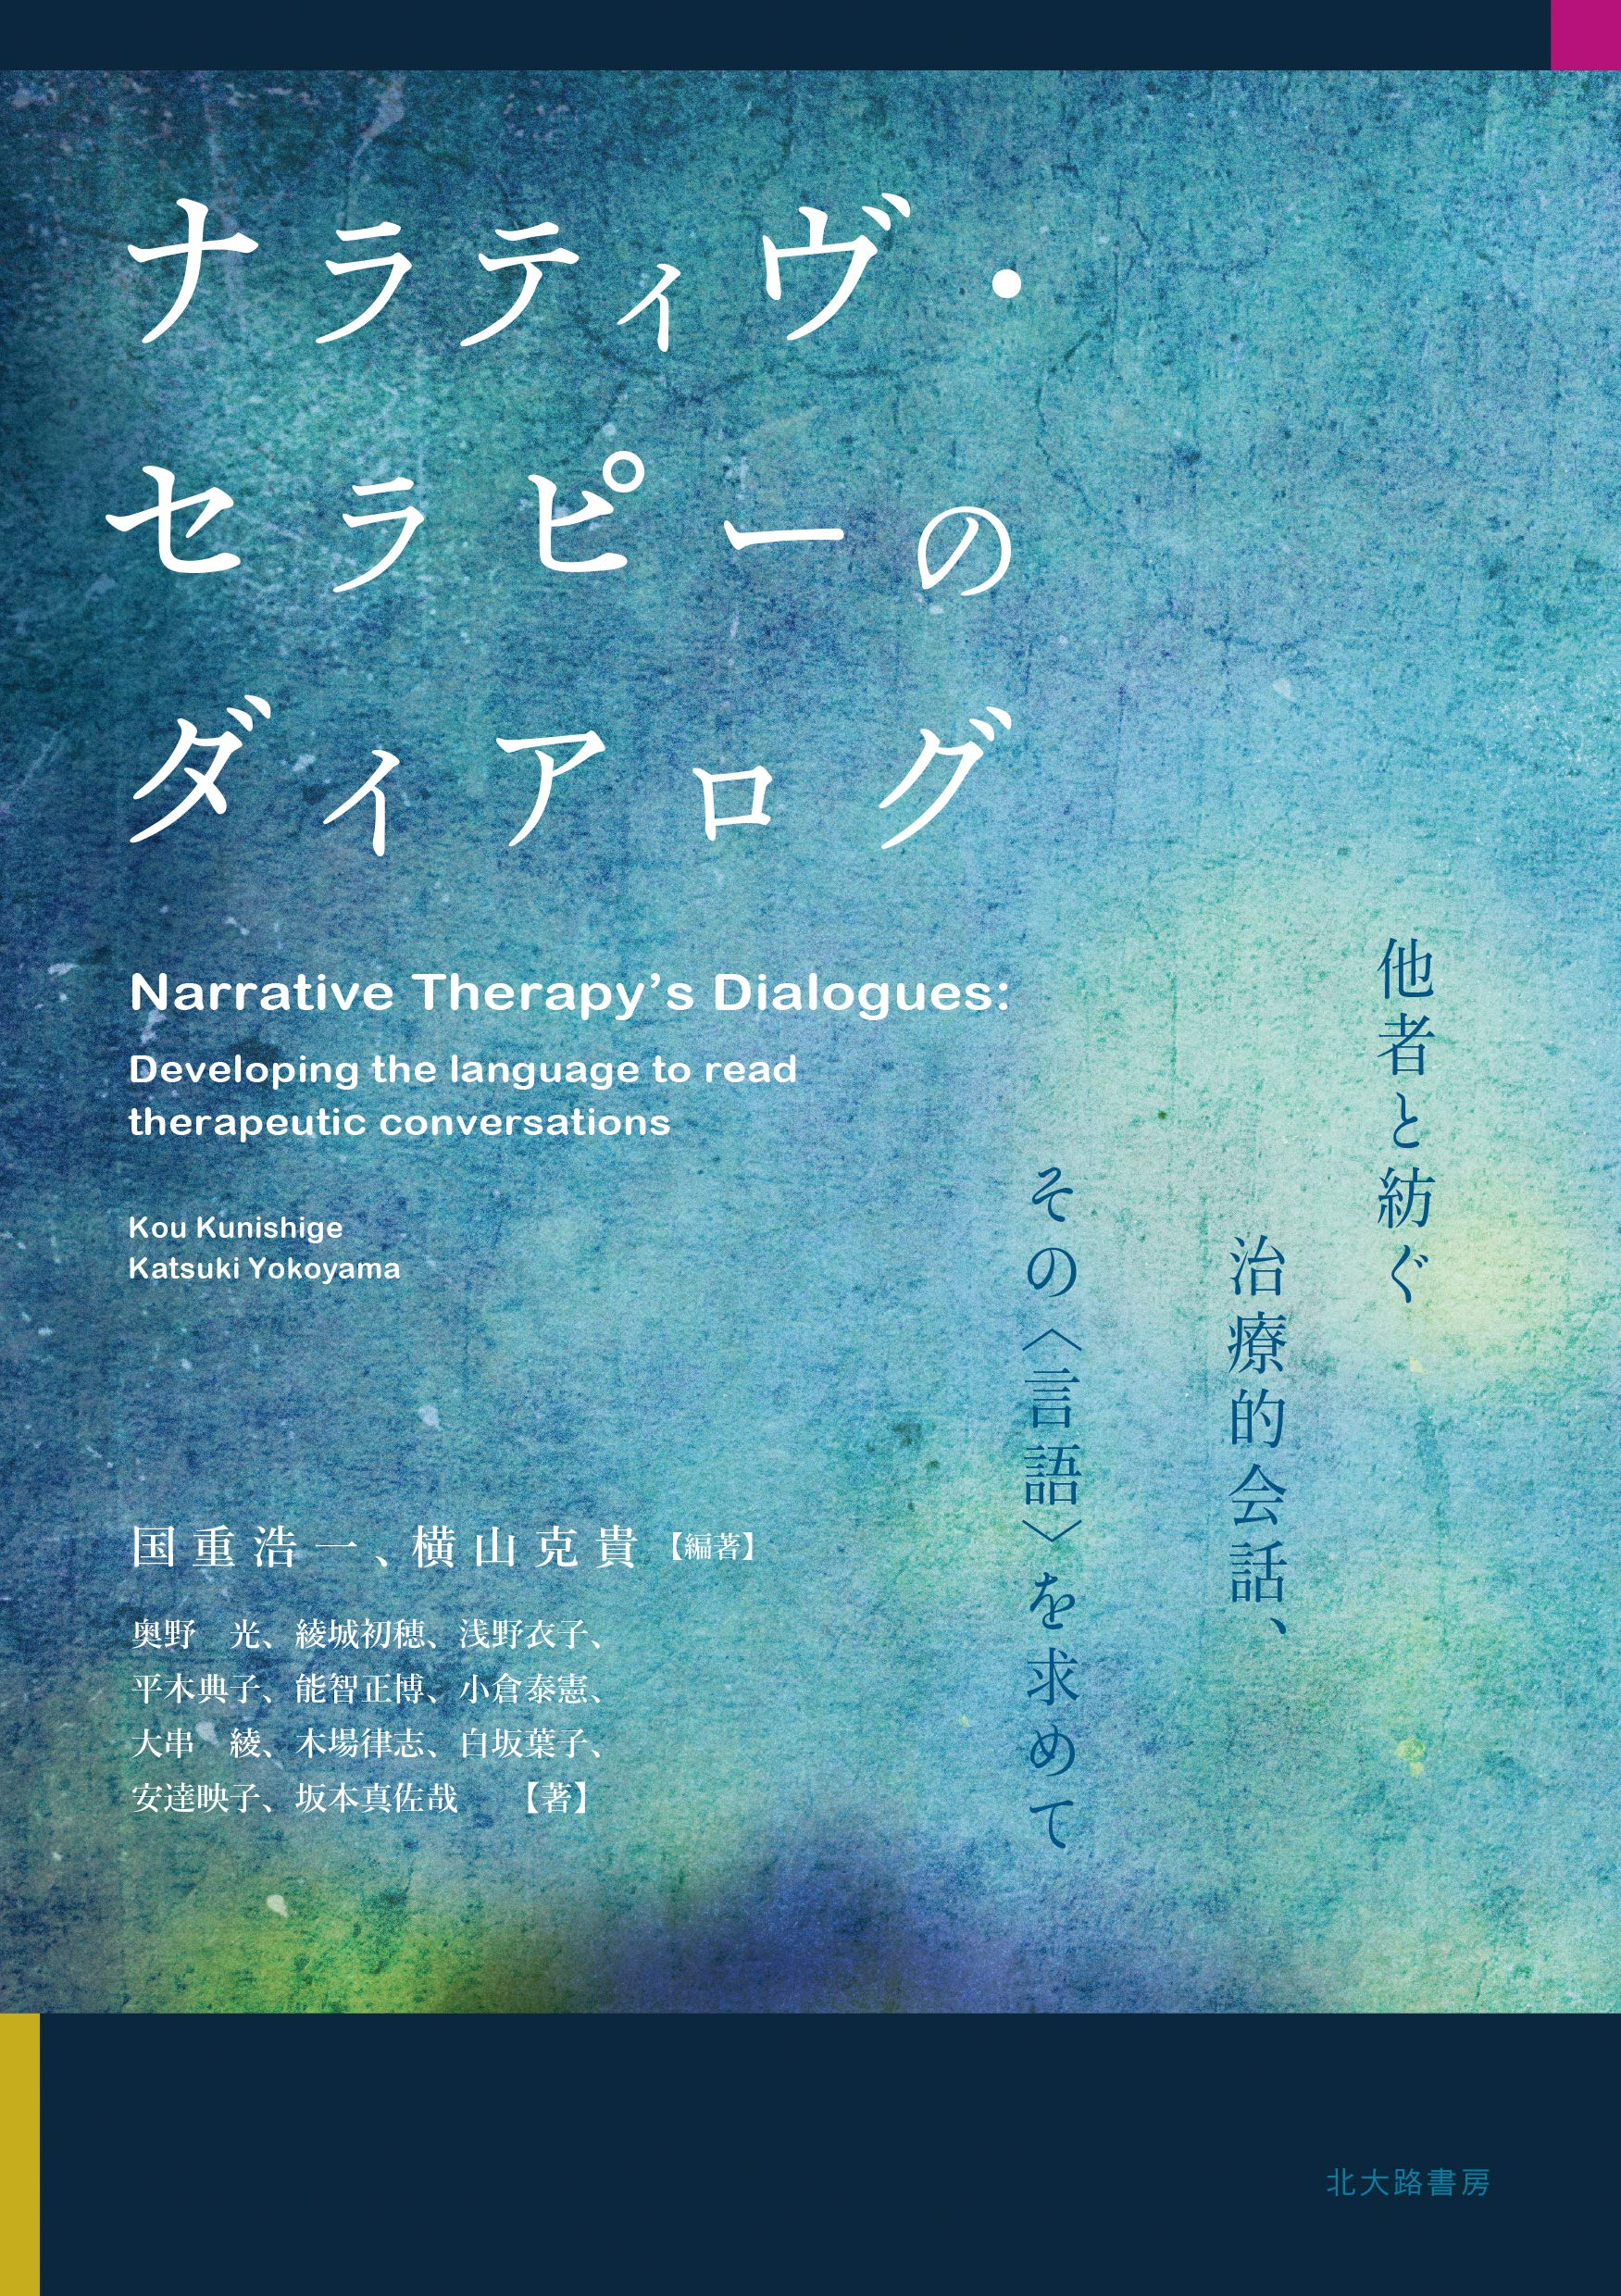 Narrative Therapy Dialogues